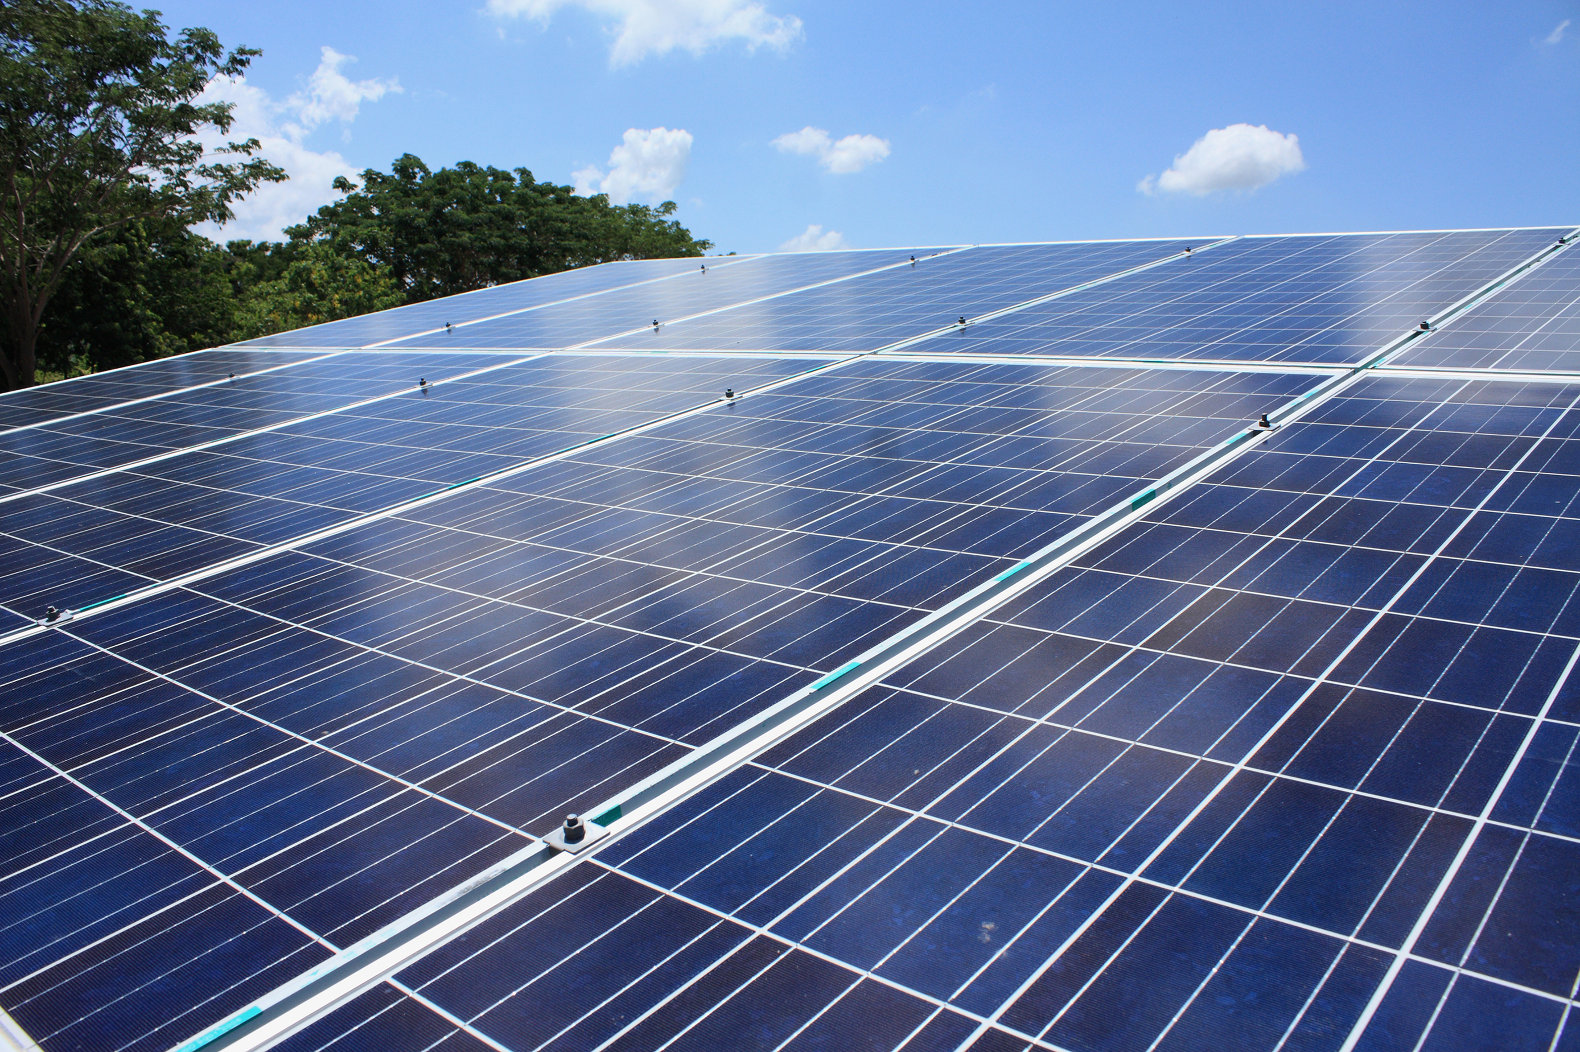 New hybrid solar cells generate 5 times more energy by harnessing sunlight and heat at the same time